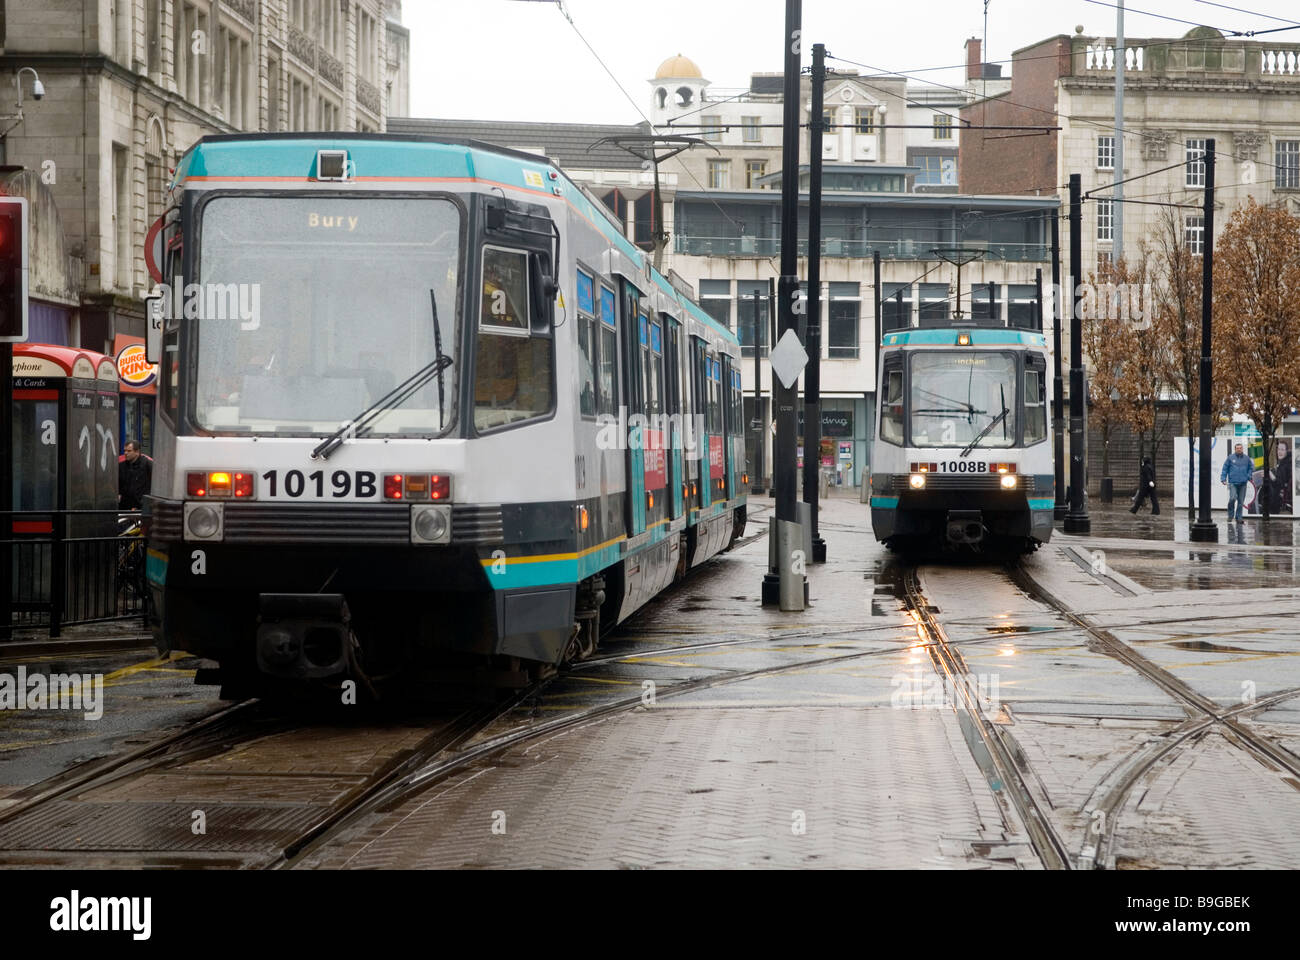 Trams in Piccadilly gardens Manchester city centre UK - Stock Image